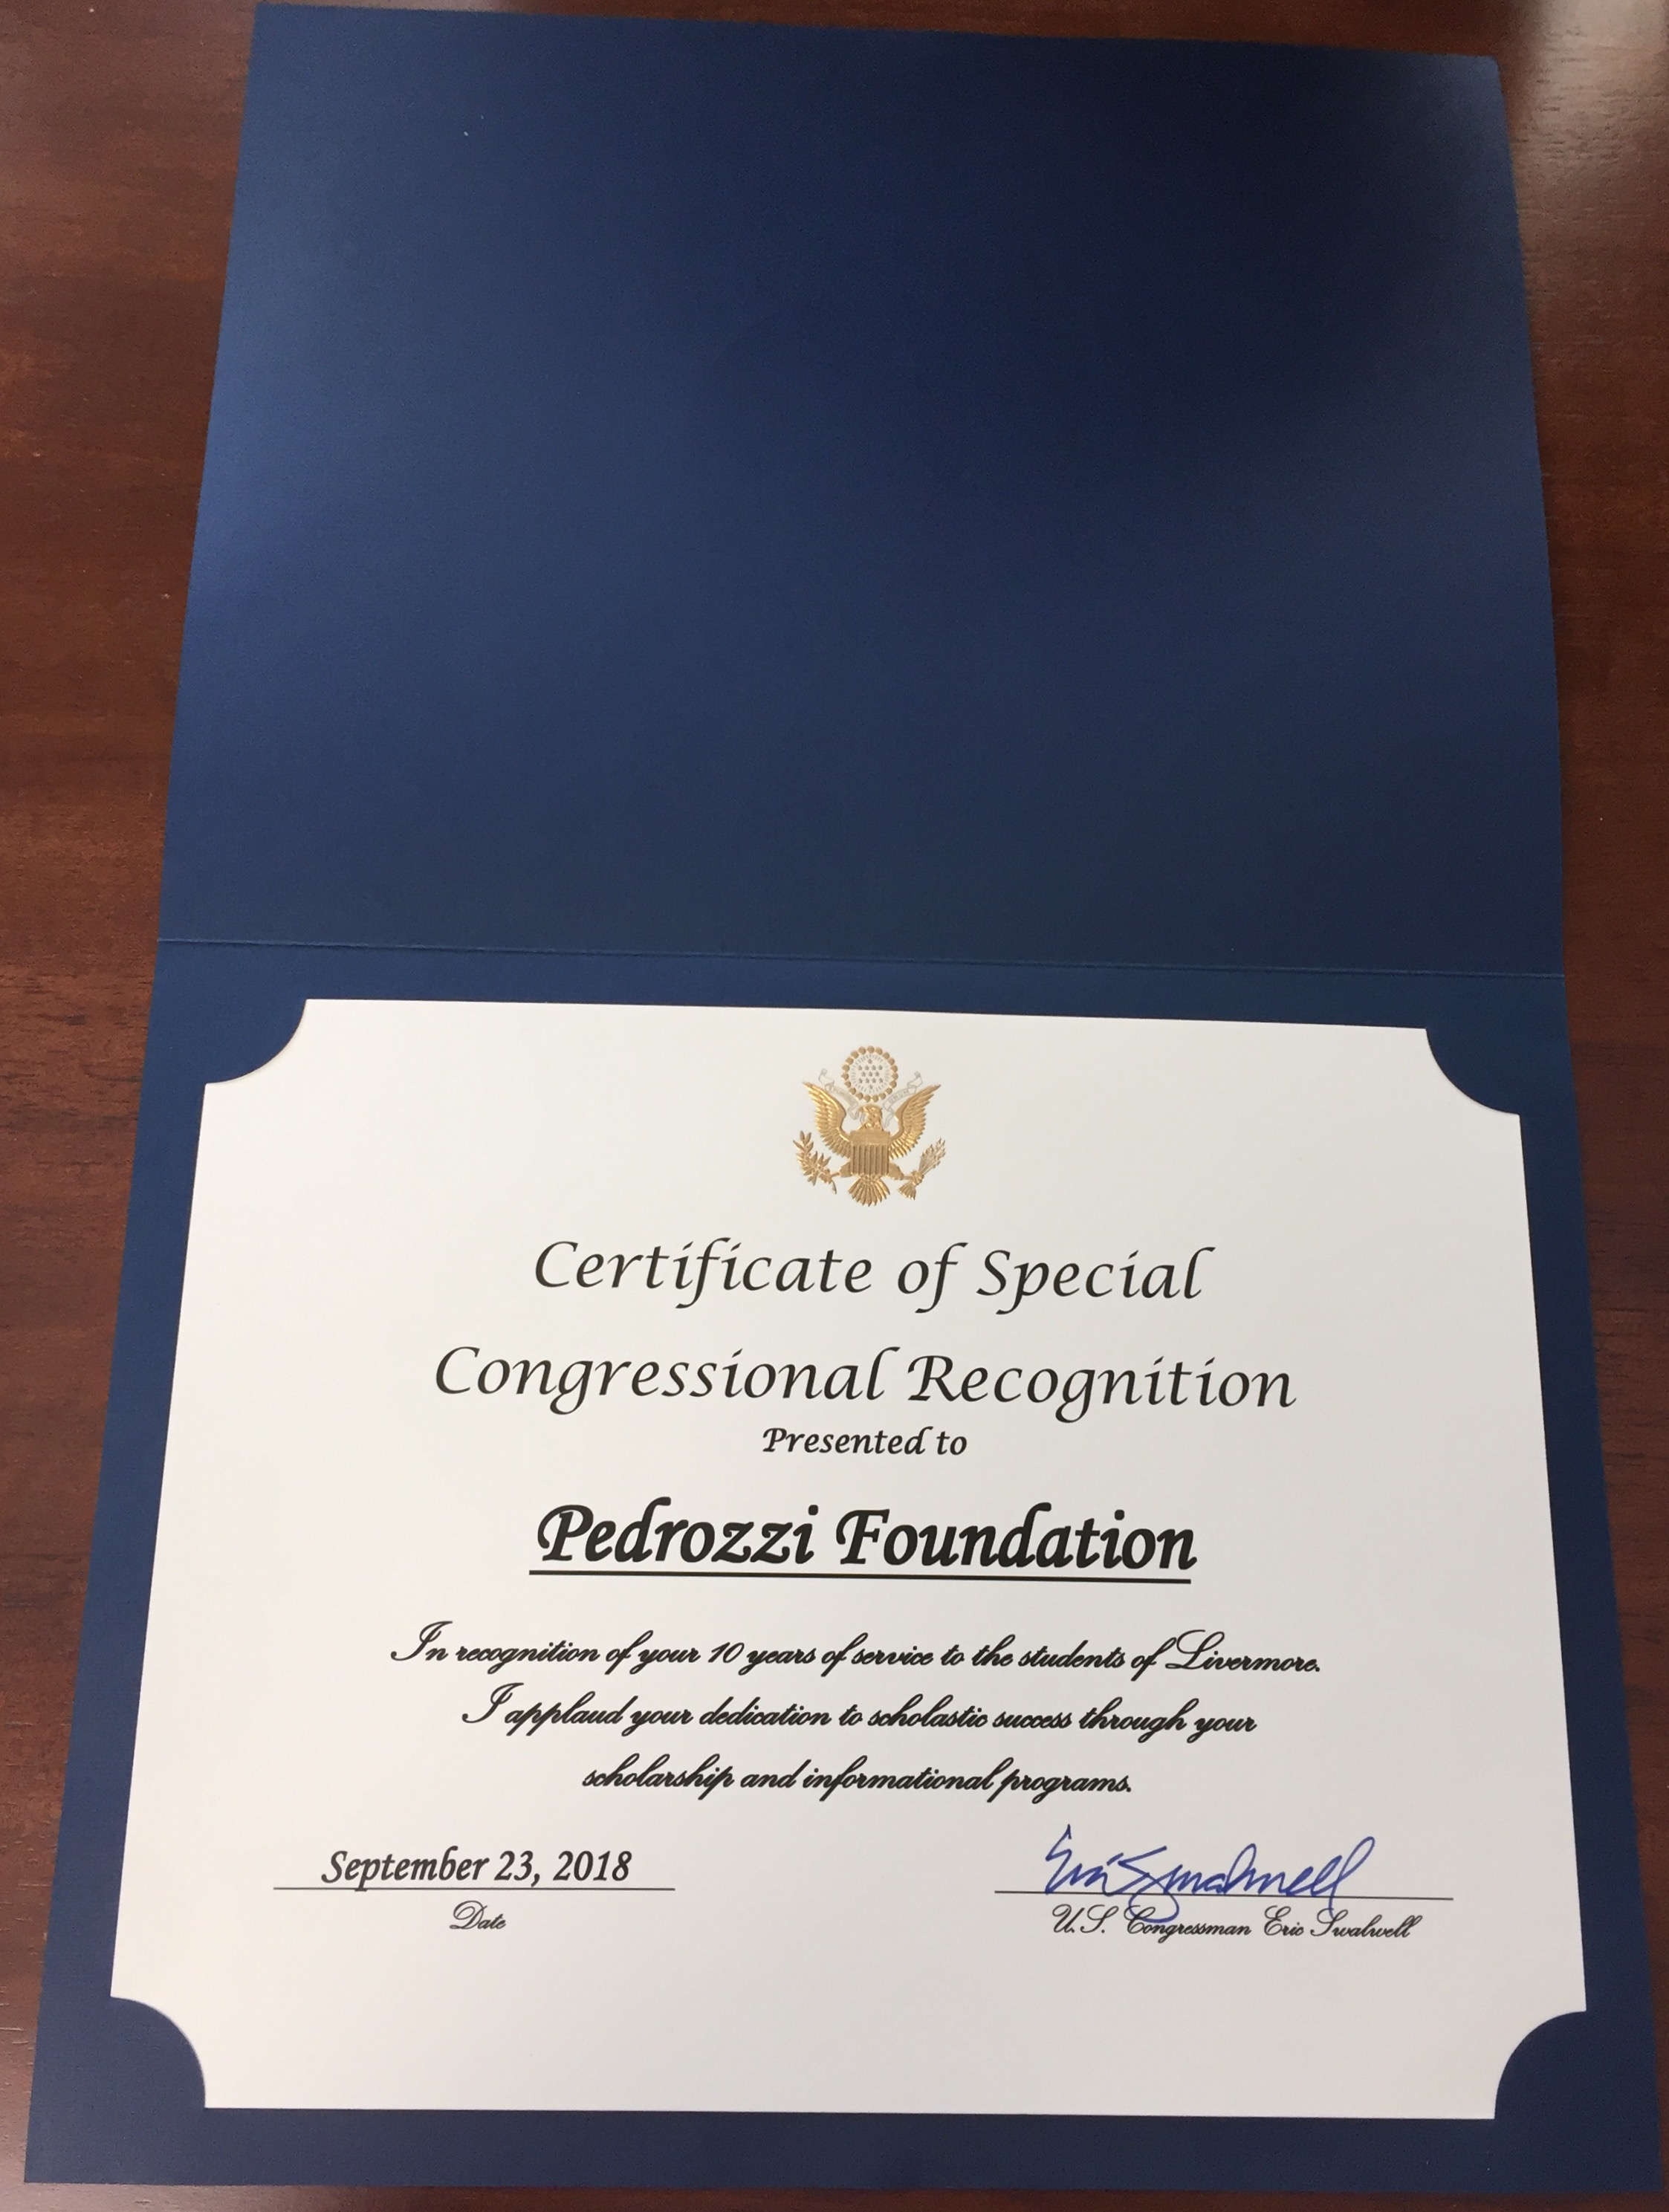 2018 Certificate of Special Congressional Recognition